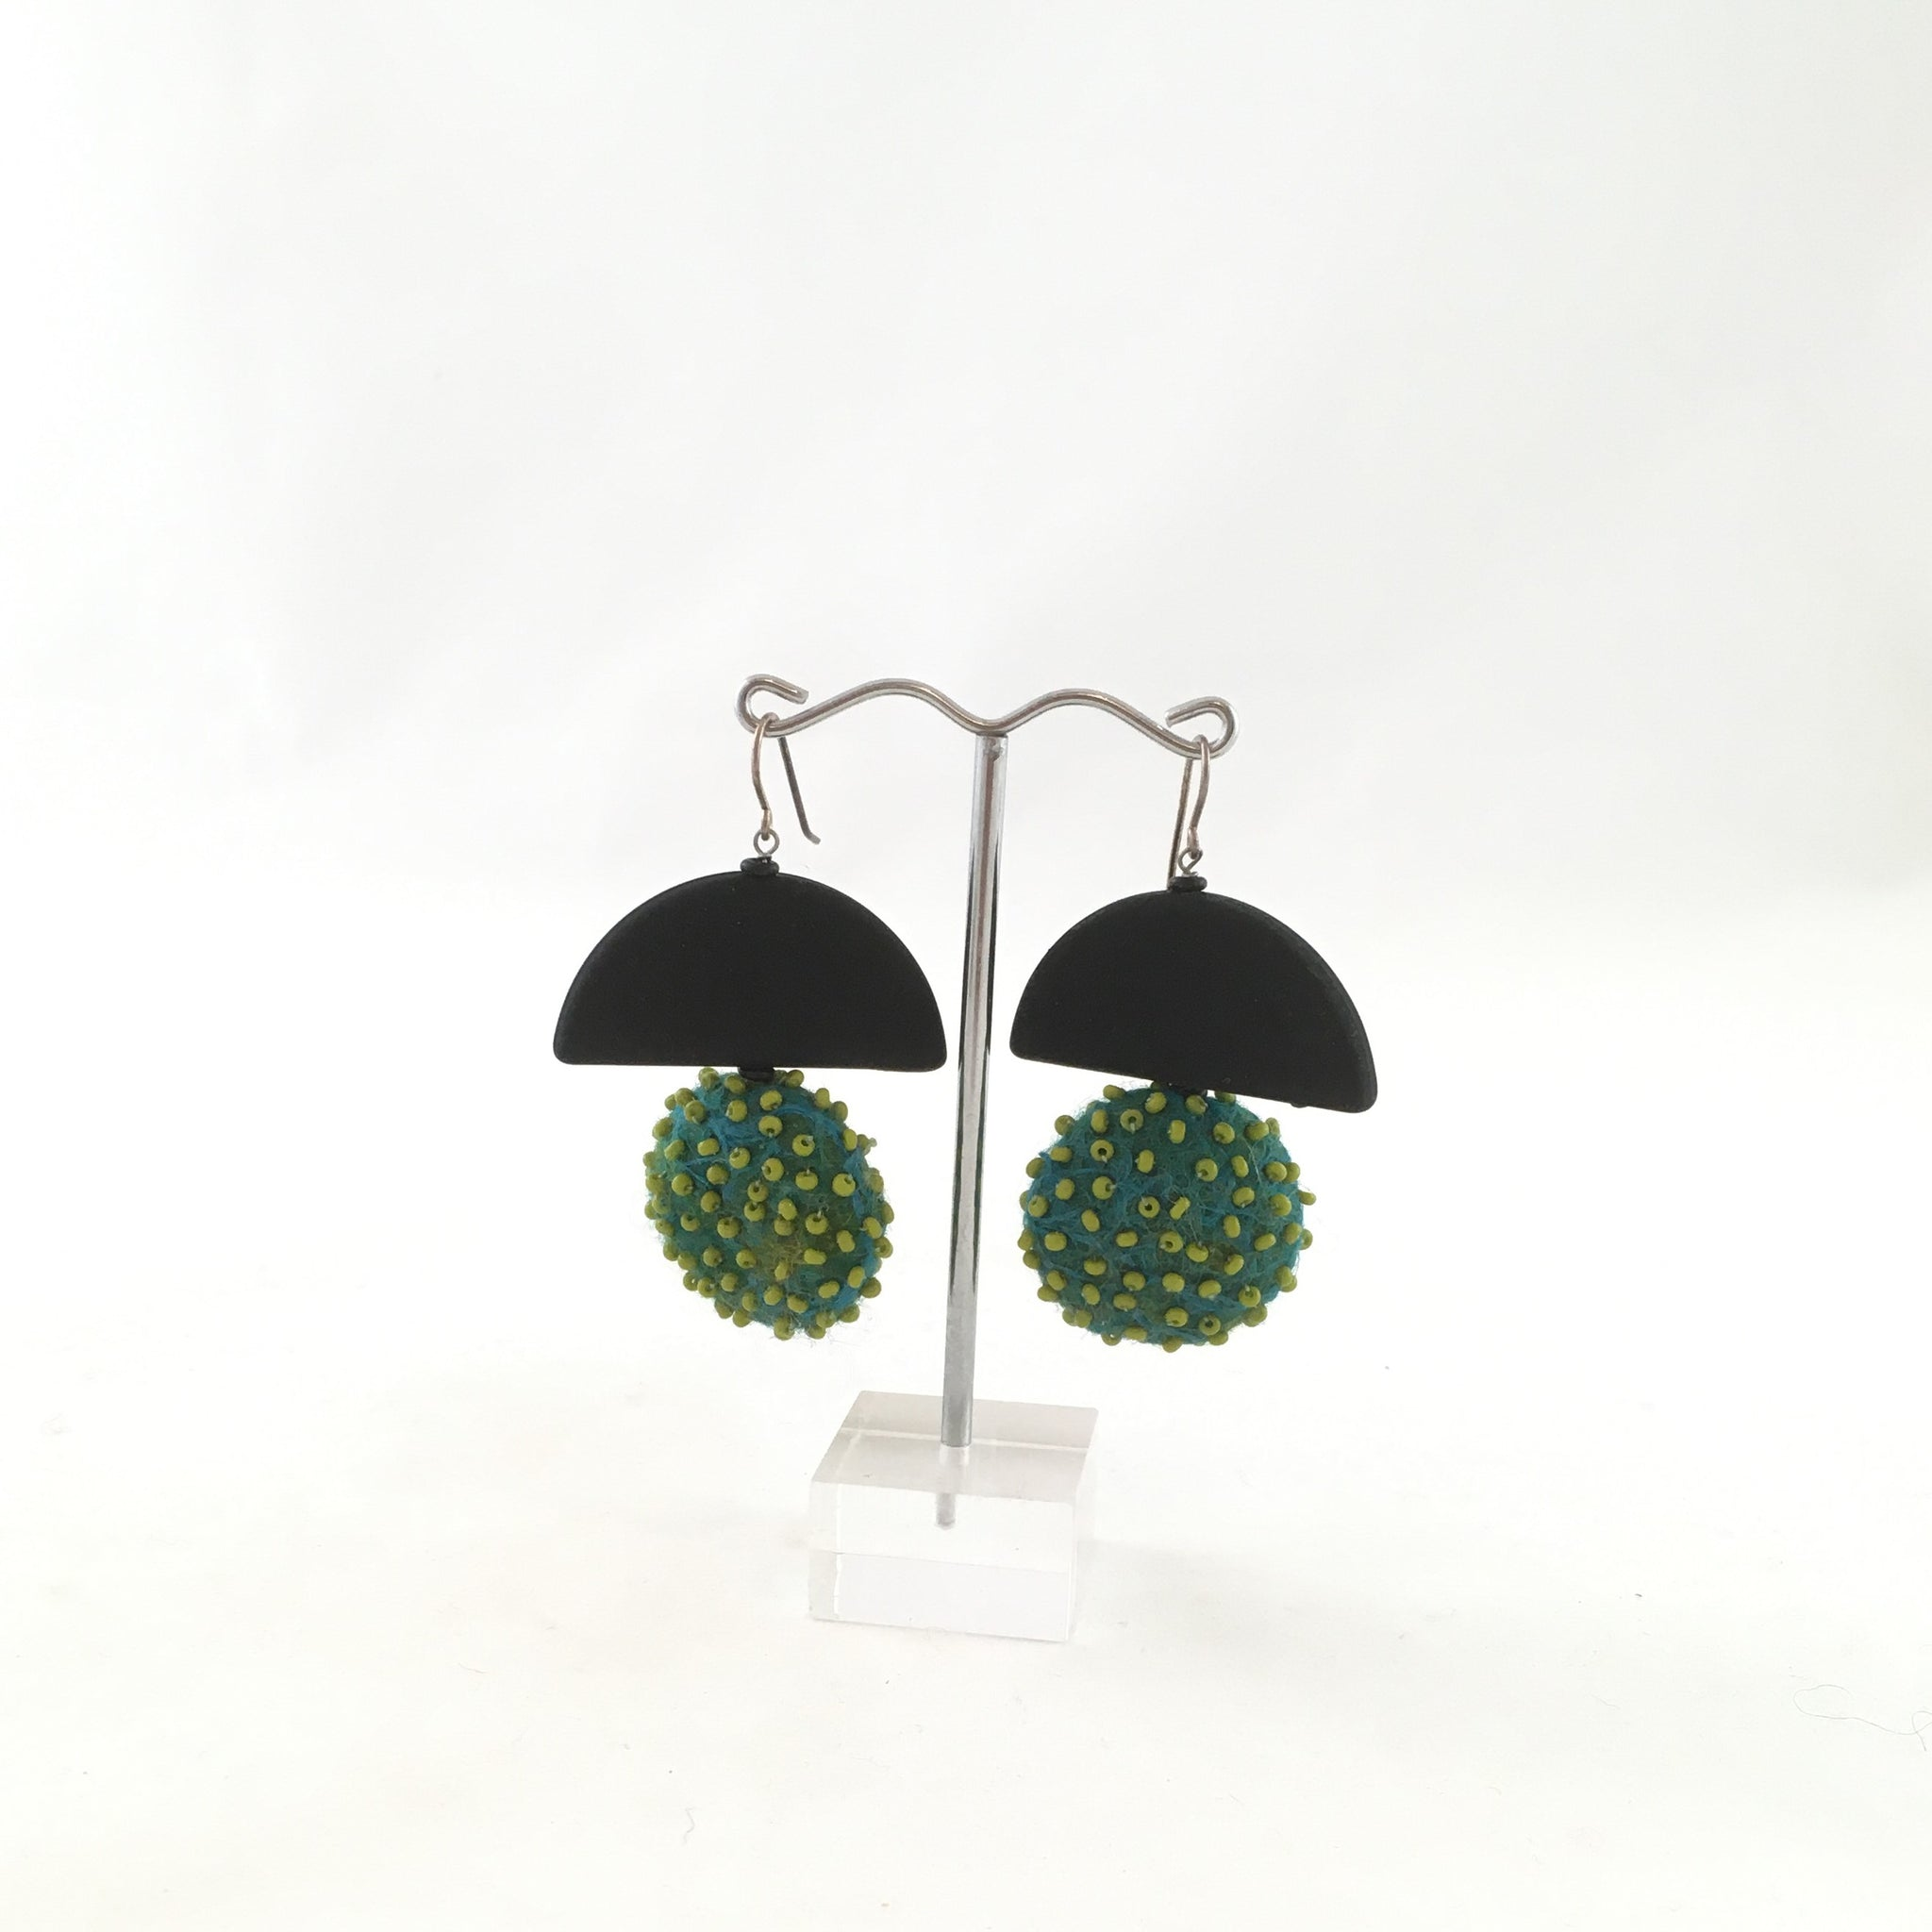 earrings at Craft NSW